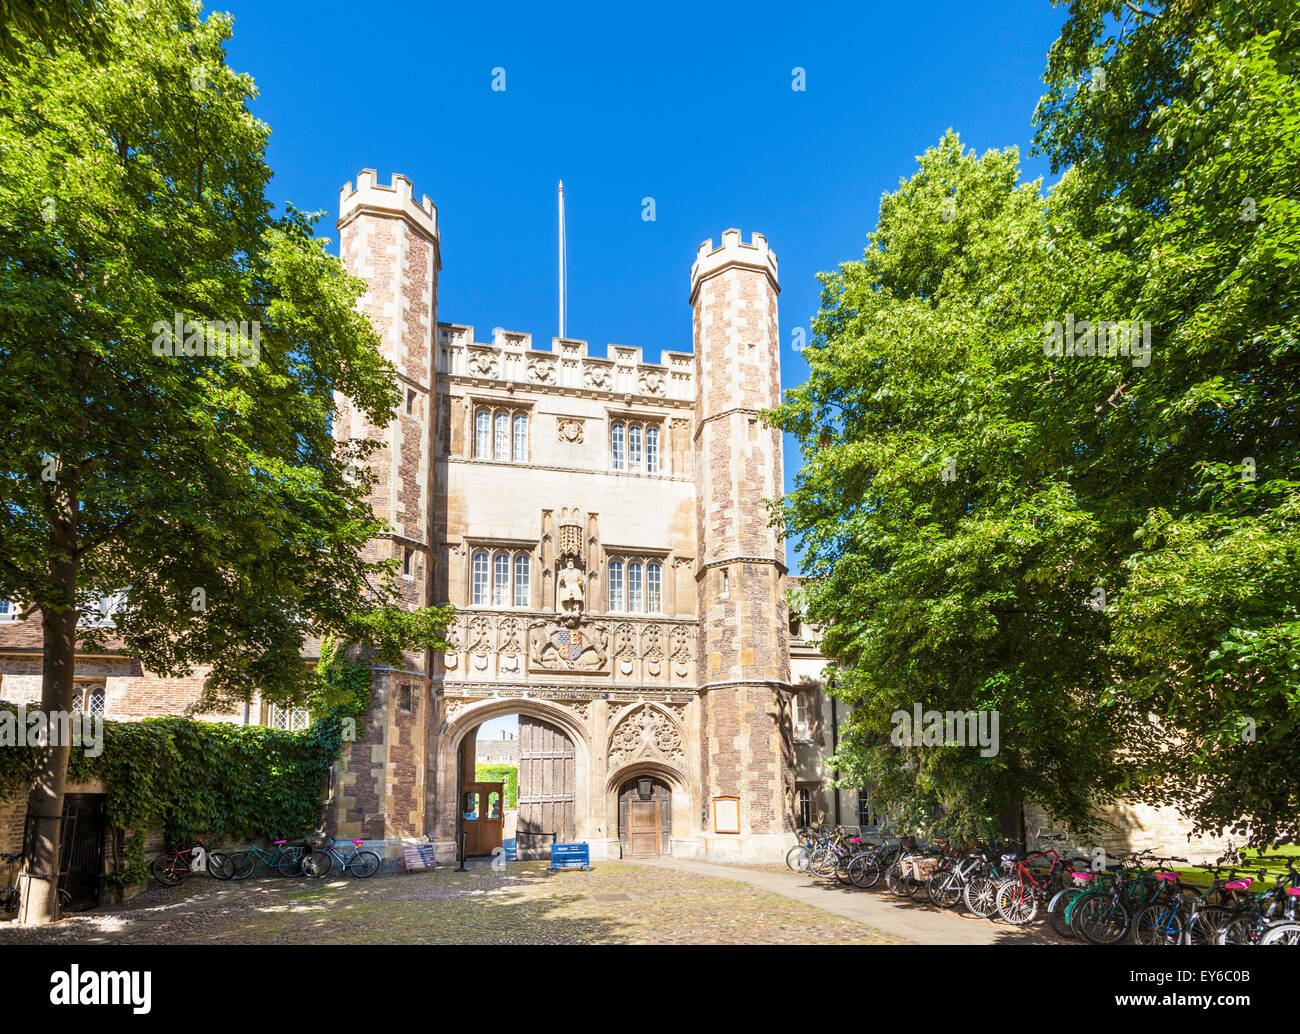 Great gate at Trinity college Cambridge university Cambridge Cambridgeshire England UK GB EU Europe - Stock Image